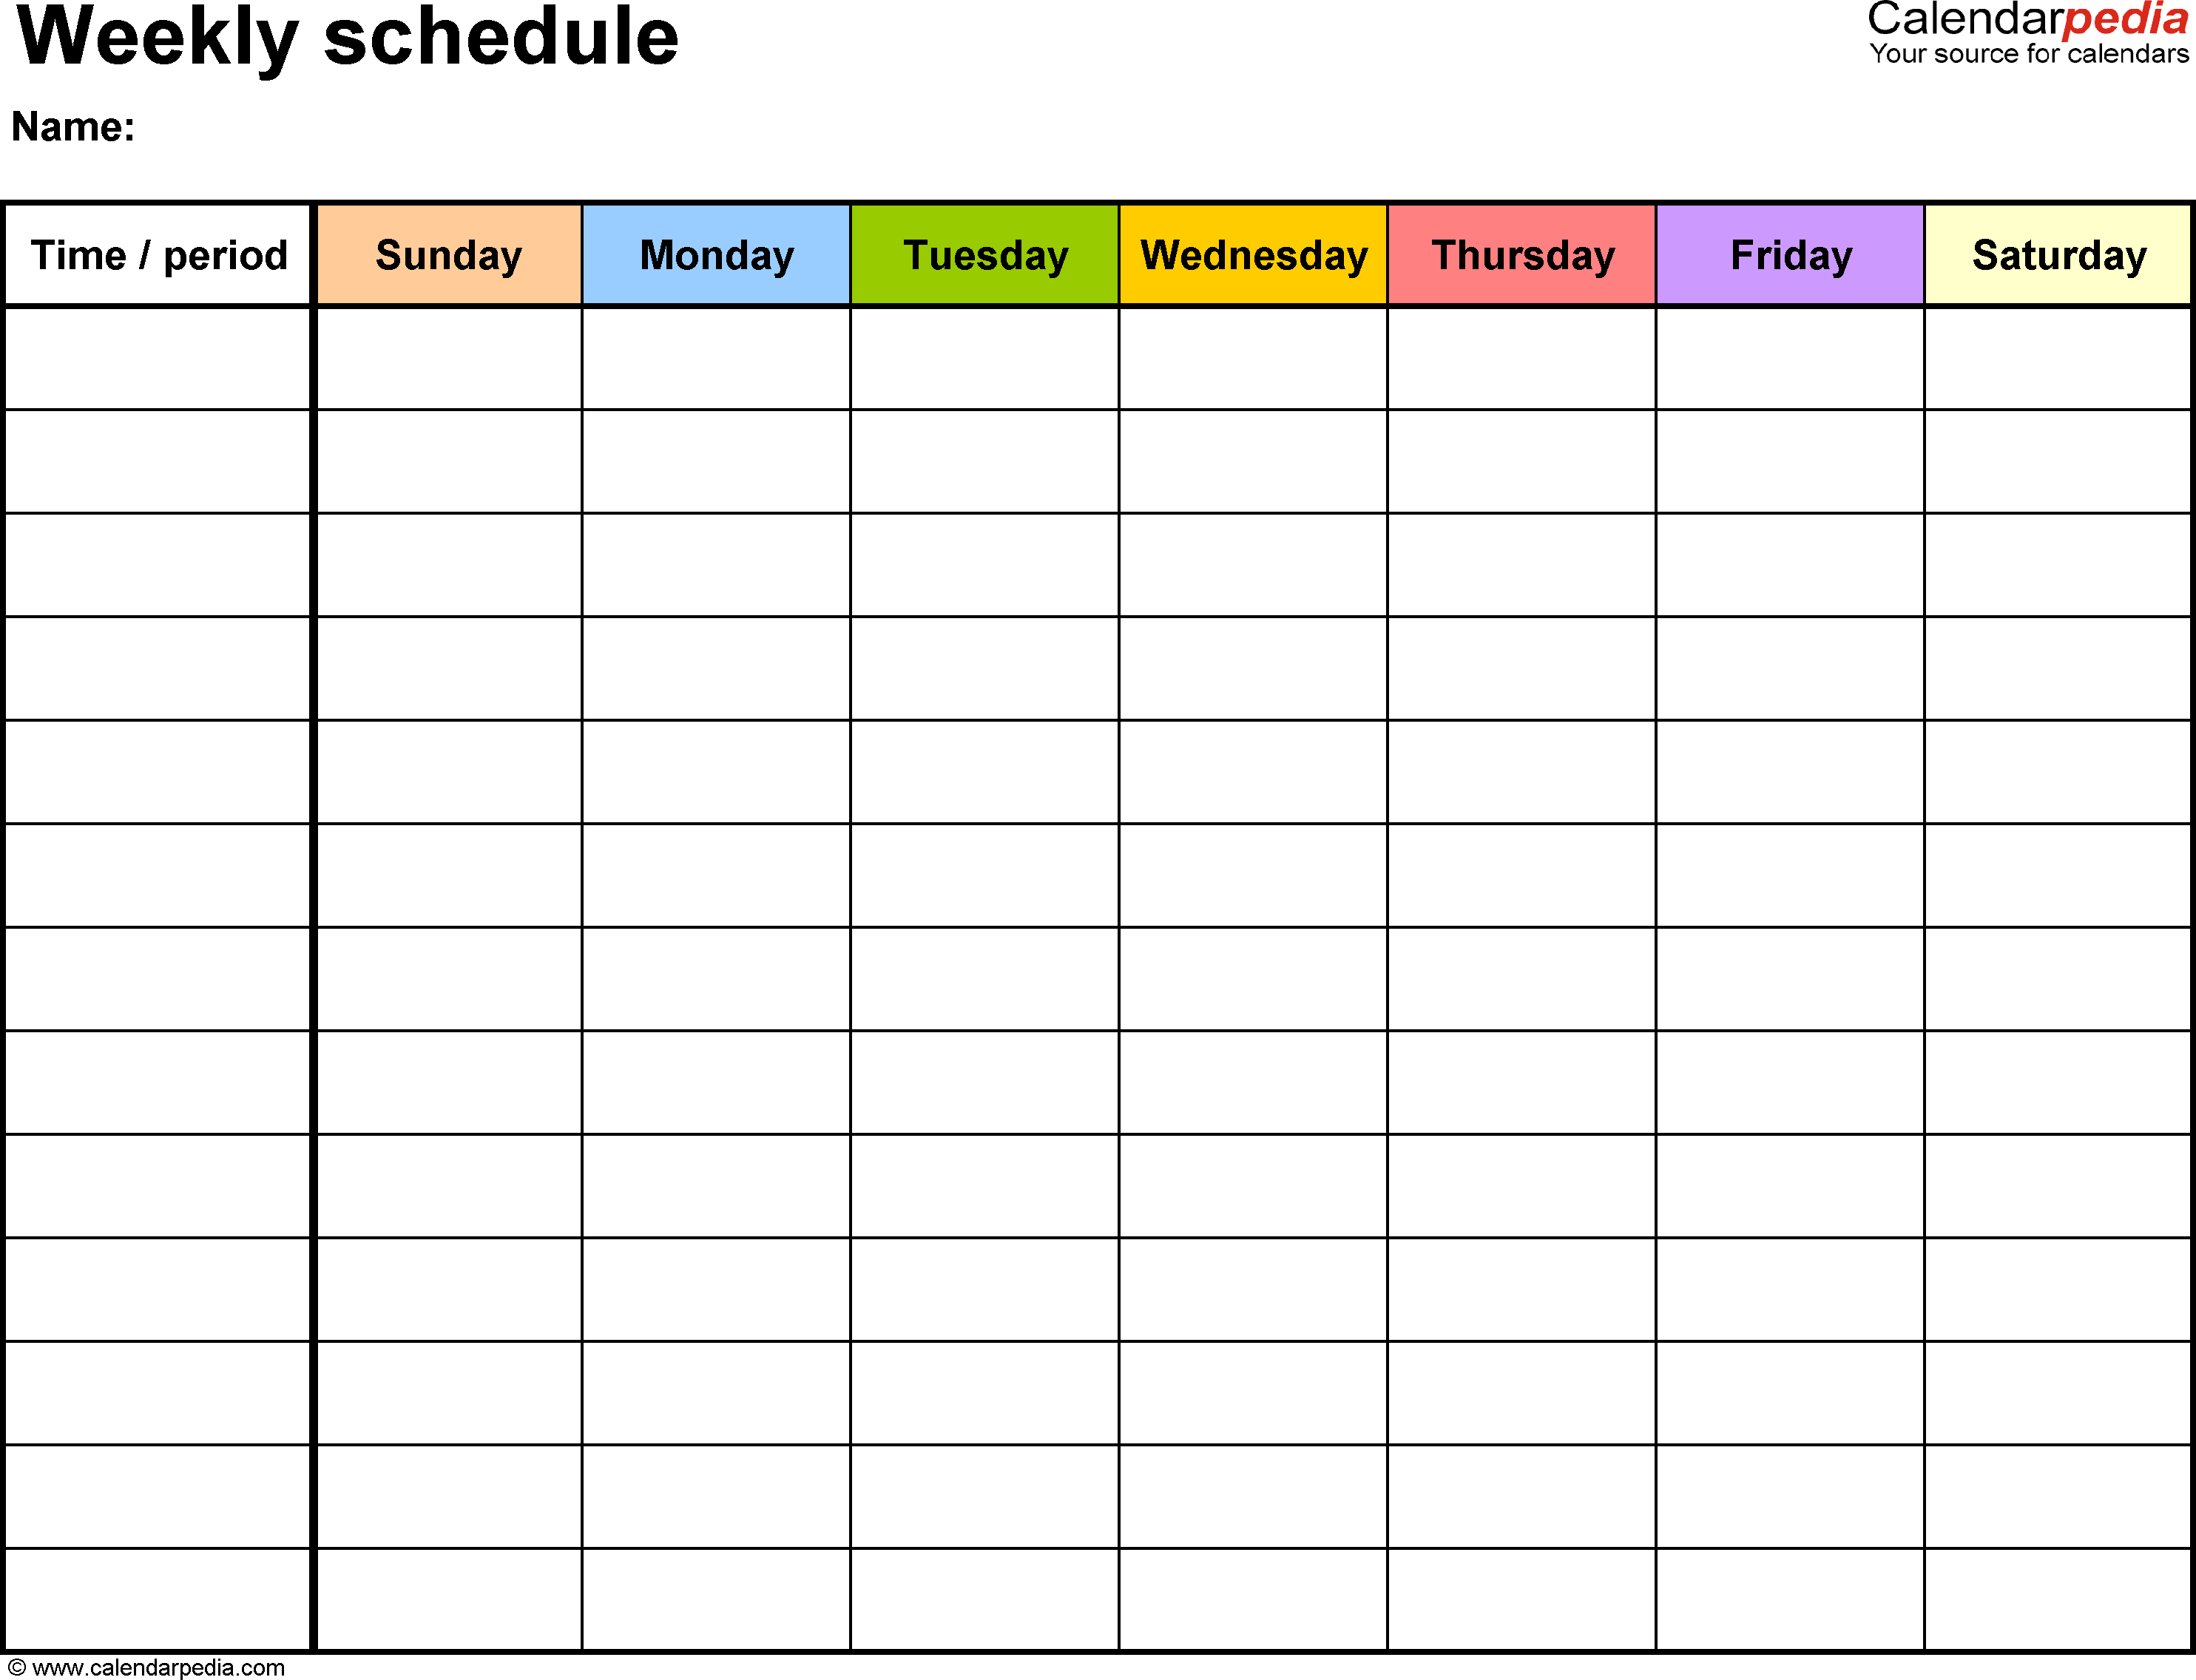 Free Weekly Schedule Templates For Word - 18 Templates with Printable Schedule Template For Pages